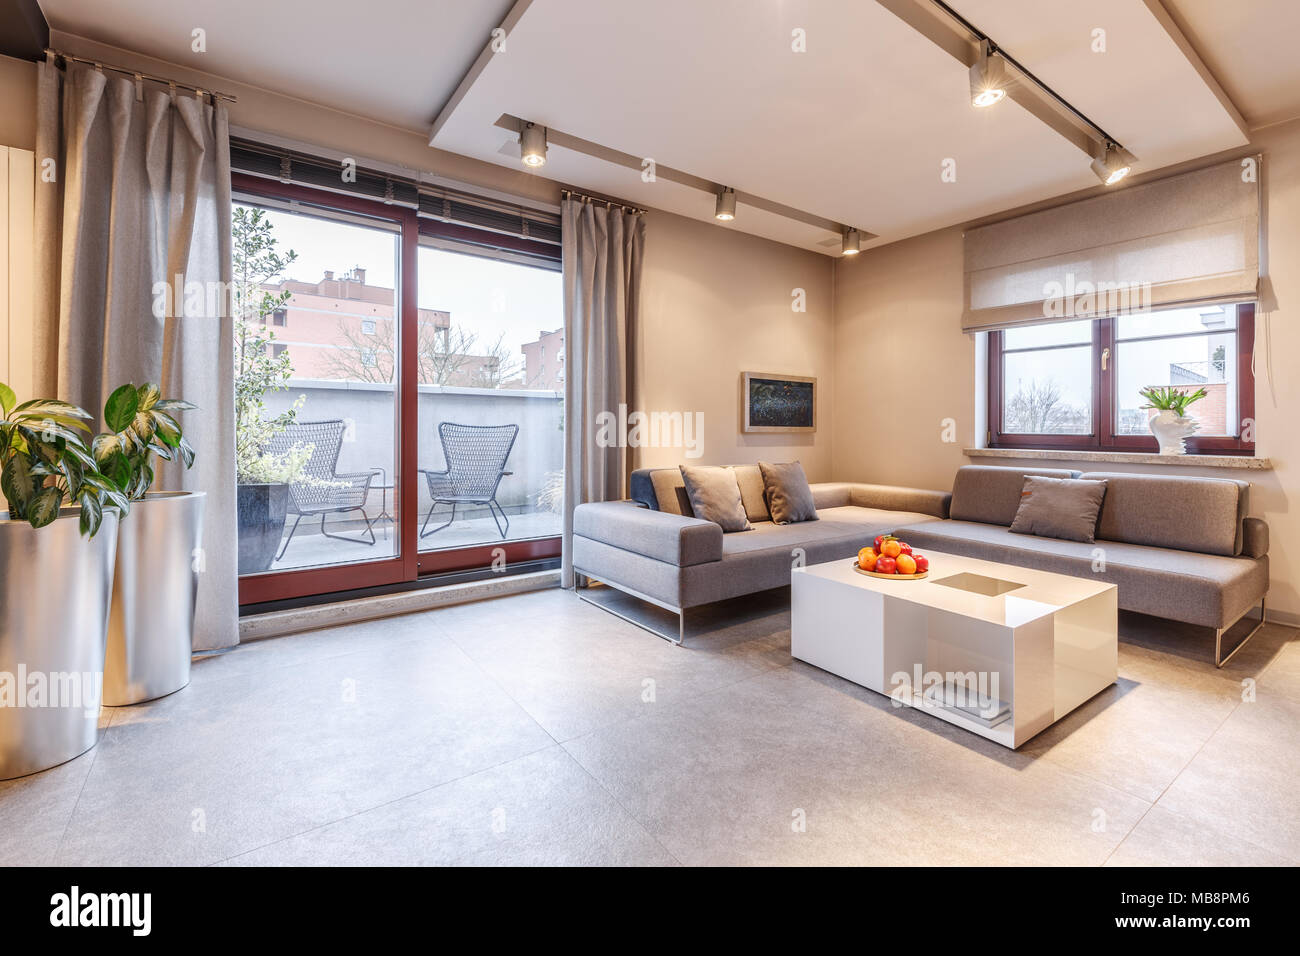 Spacious Modern And Brown Living Room Interior With A Grey